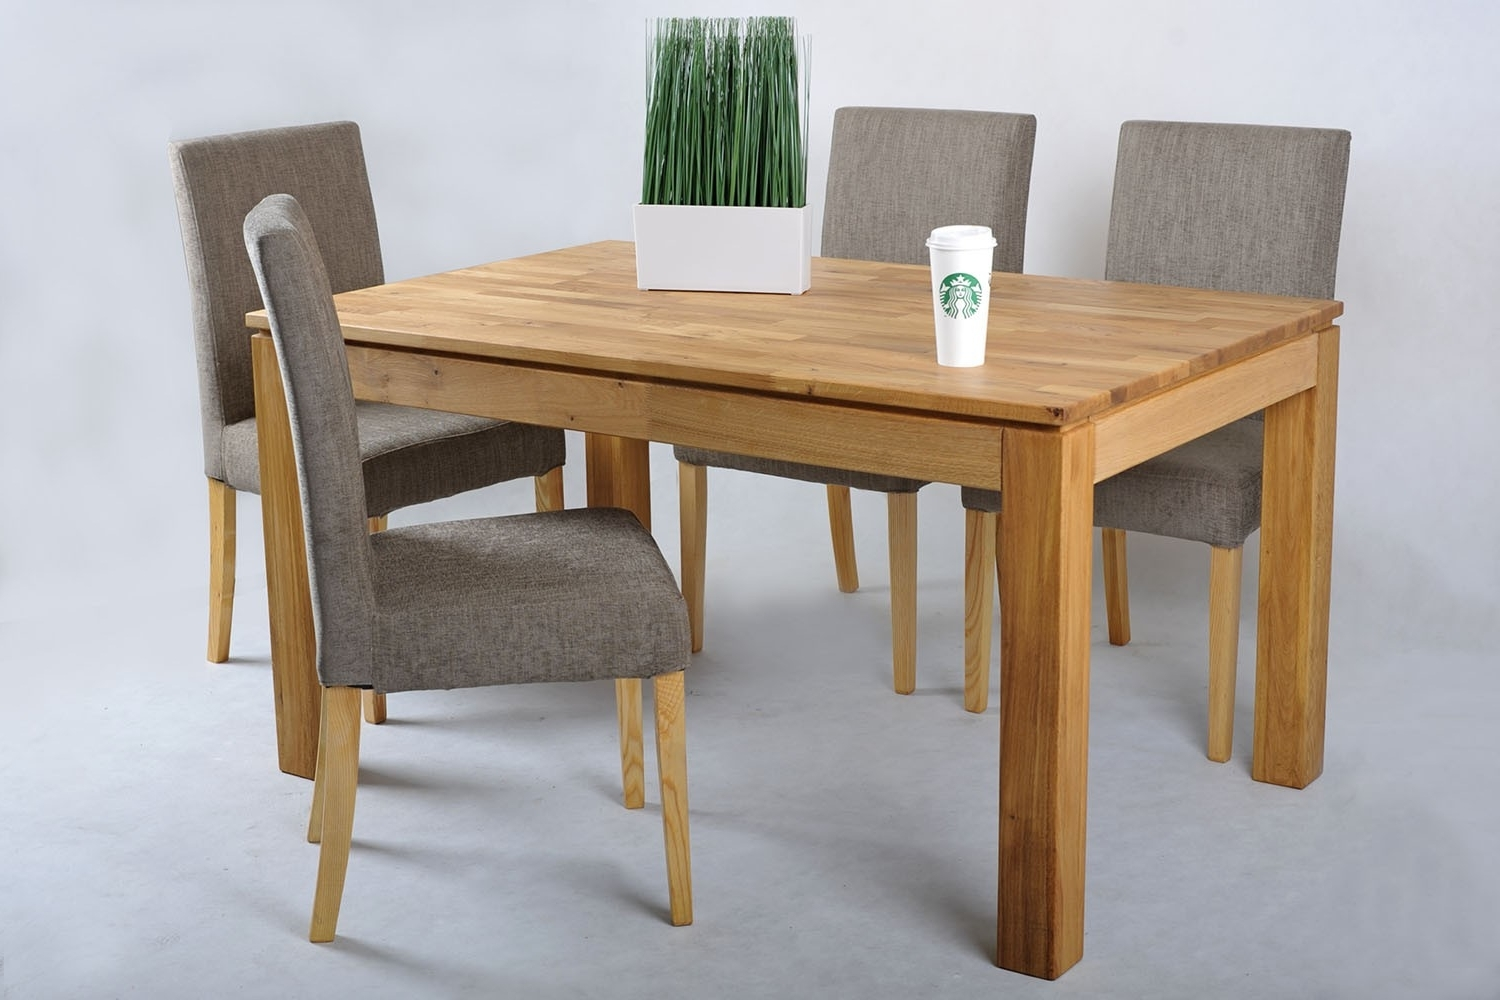 Grey Pertaining To Most Up To Date Extending Dining Tables Sets (View 13 of 25)